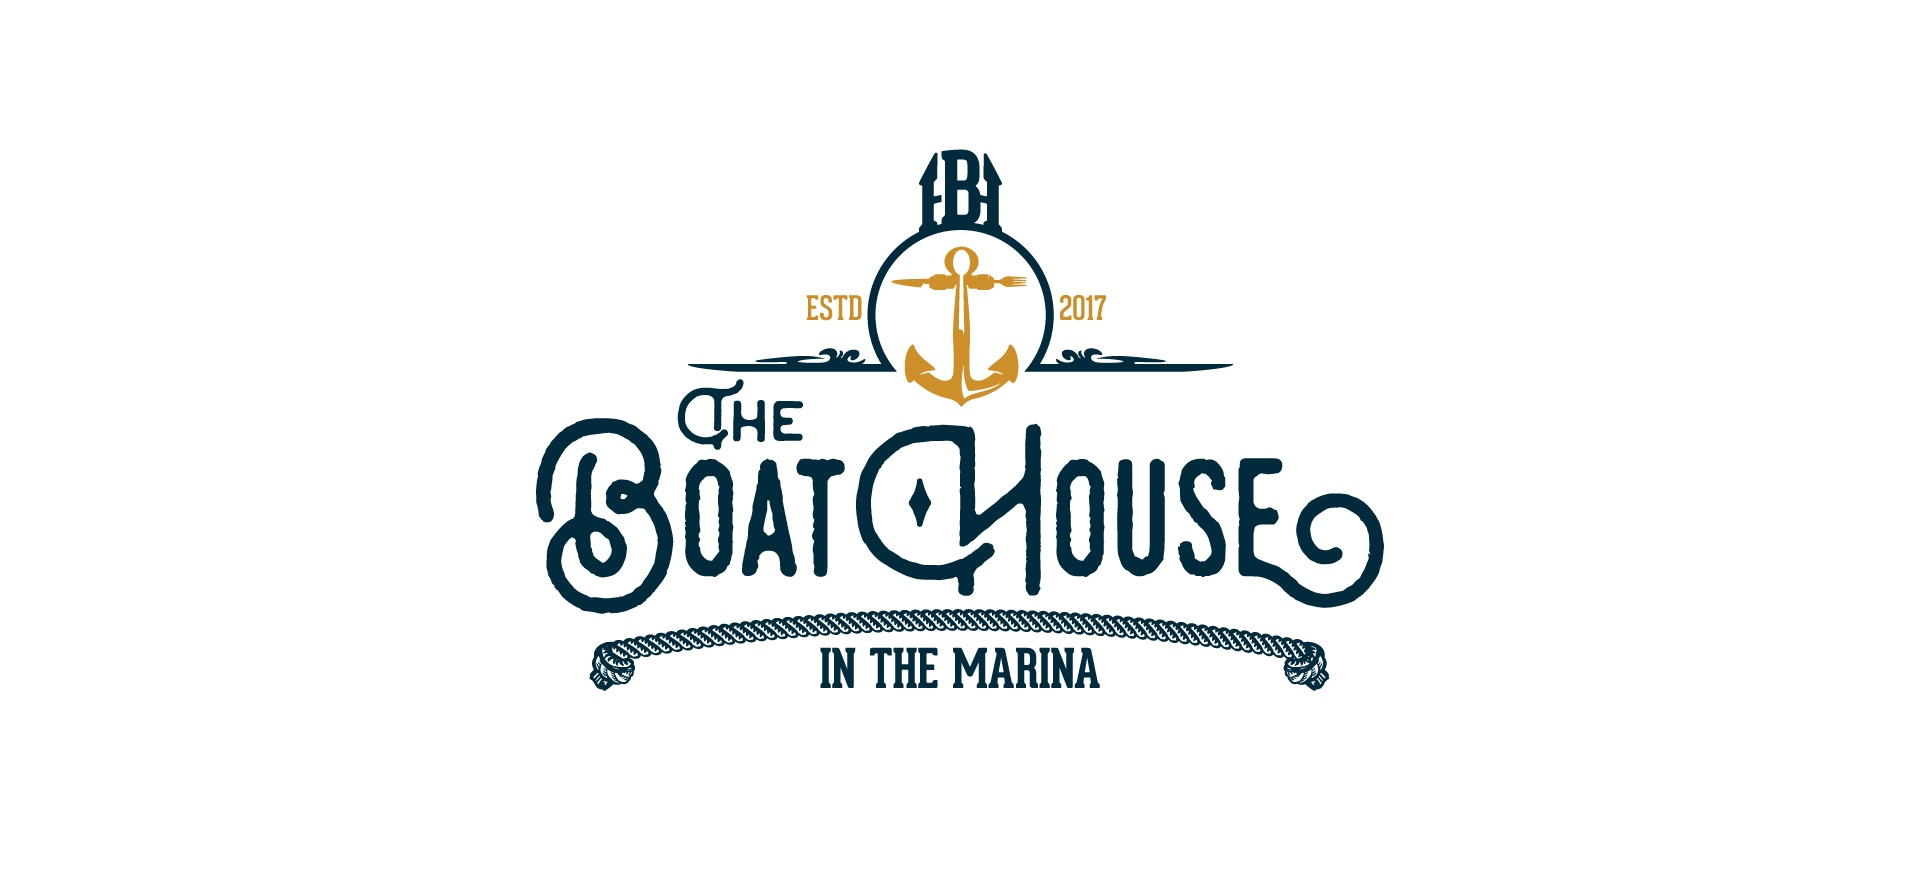 The Boat House in the Marina